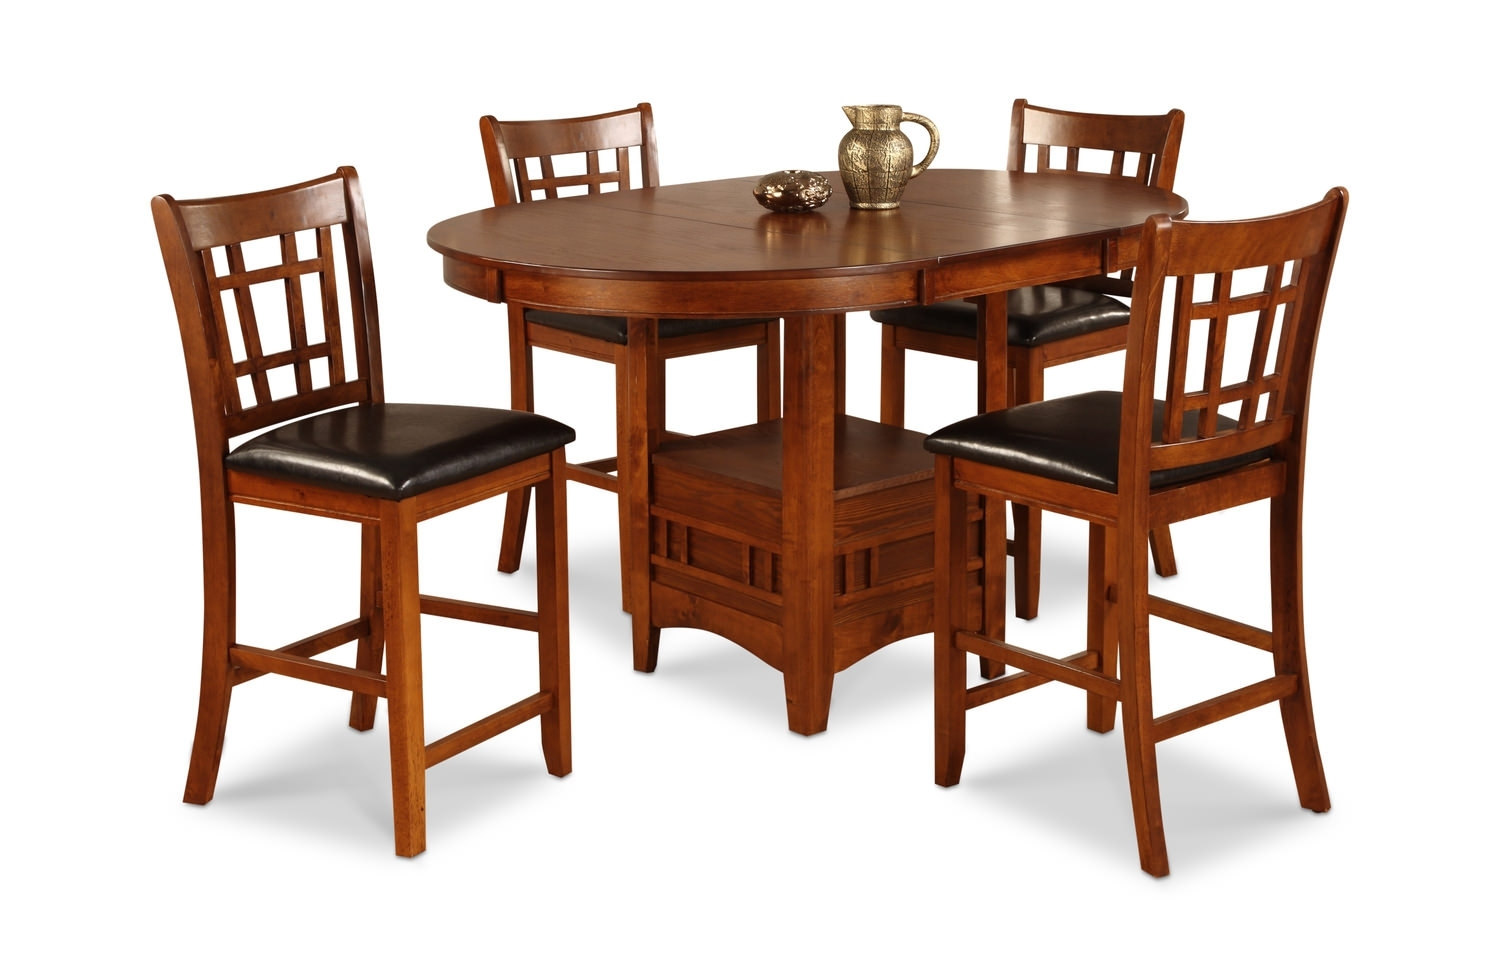 Dining Sets – Kitchen & Dining Room Sets – Hom Furniture Pertaining To Current Chapleau Ii 7 Piece Extension Dining Tables With Side Chairs (Image 9 of 20)